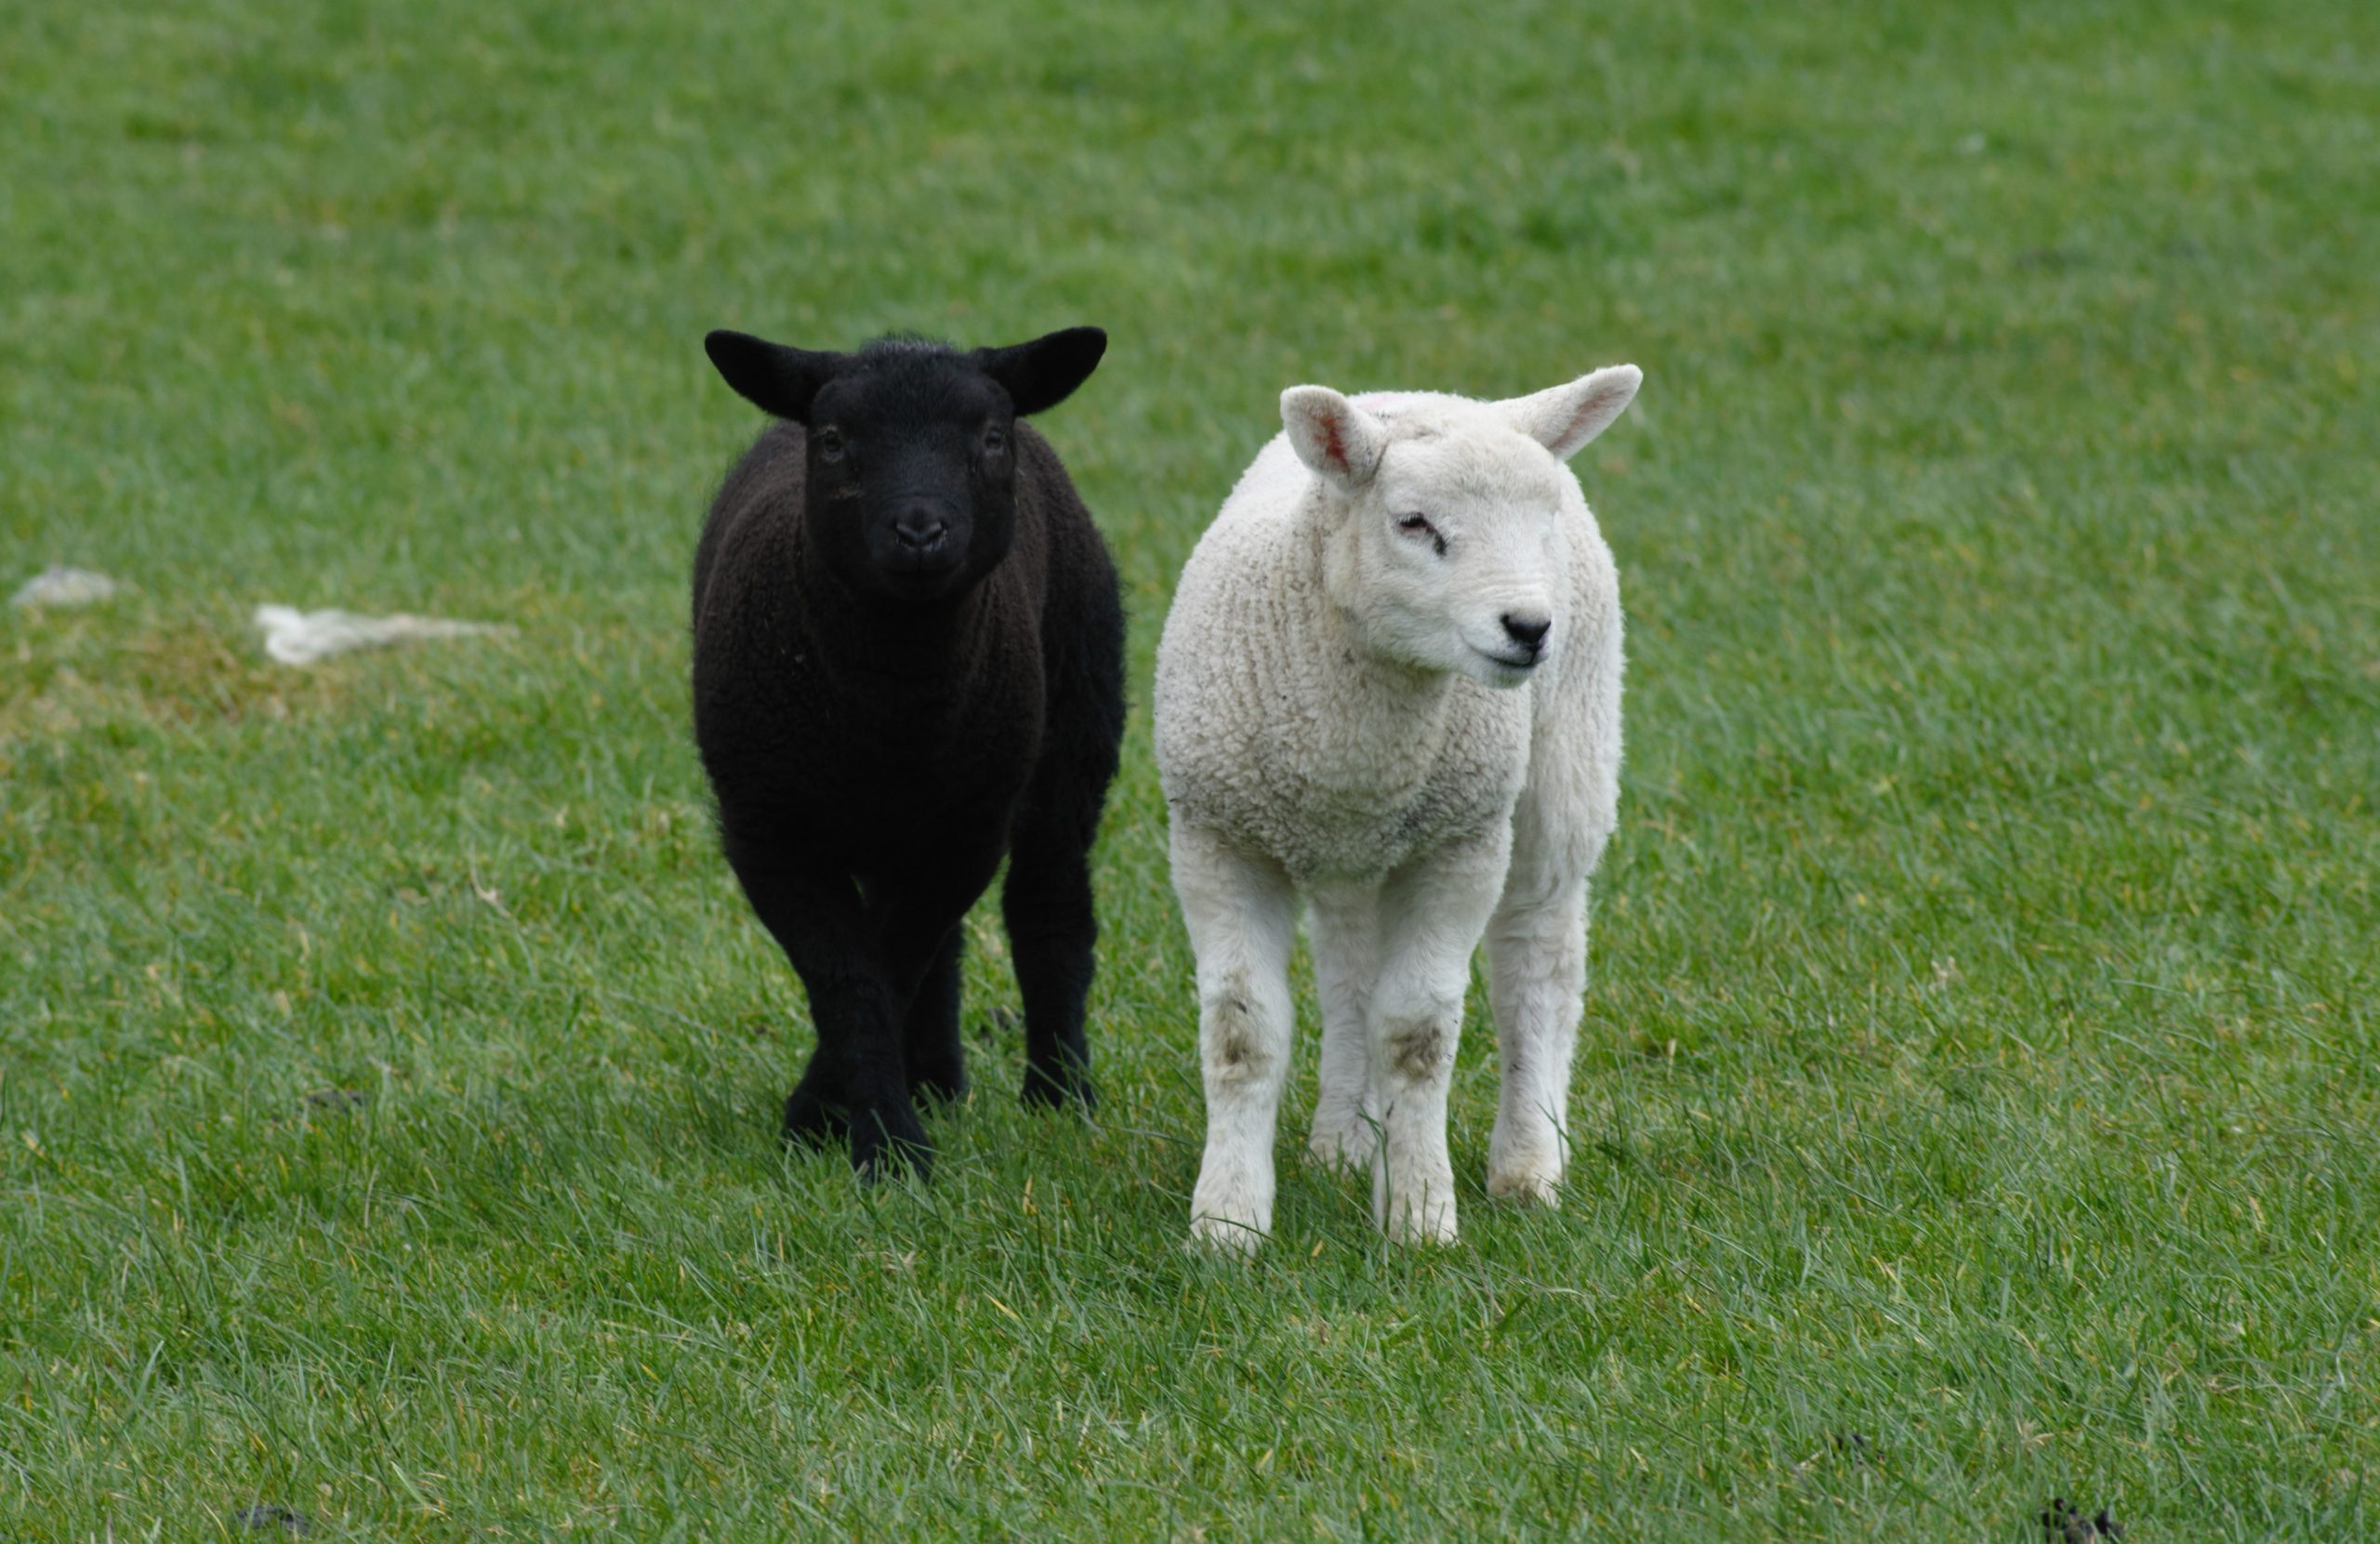 Seasonal warning issued over copper risk to sheep